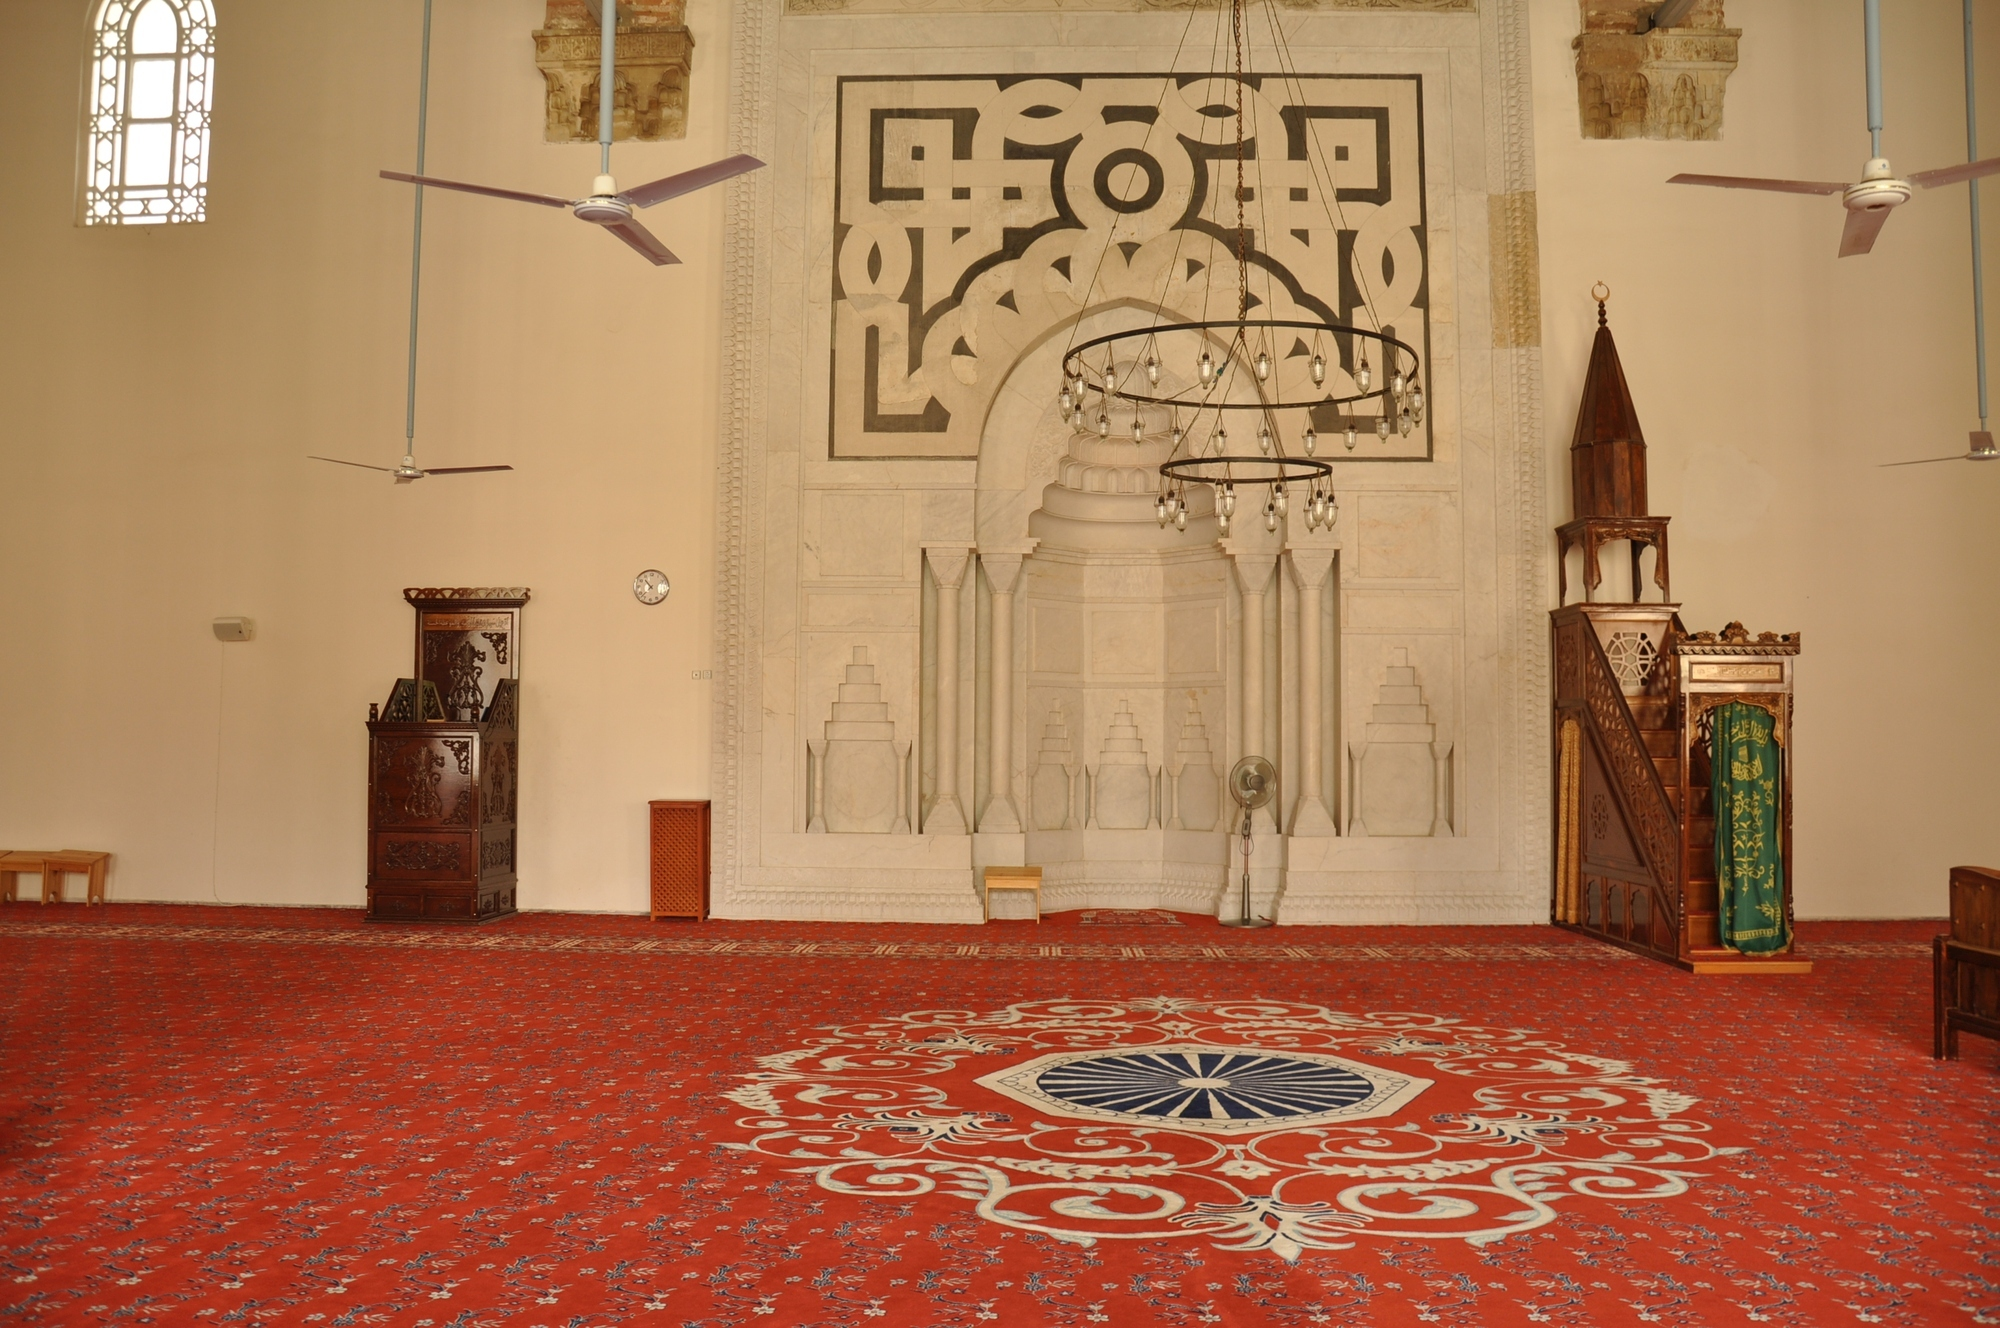 The interior of İsa Bey Mosque without the original decorations